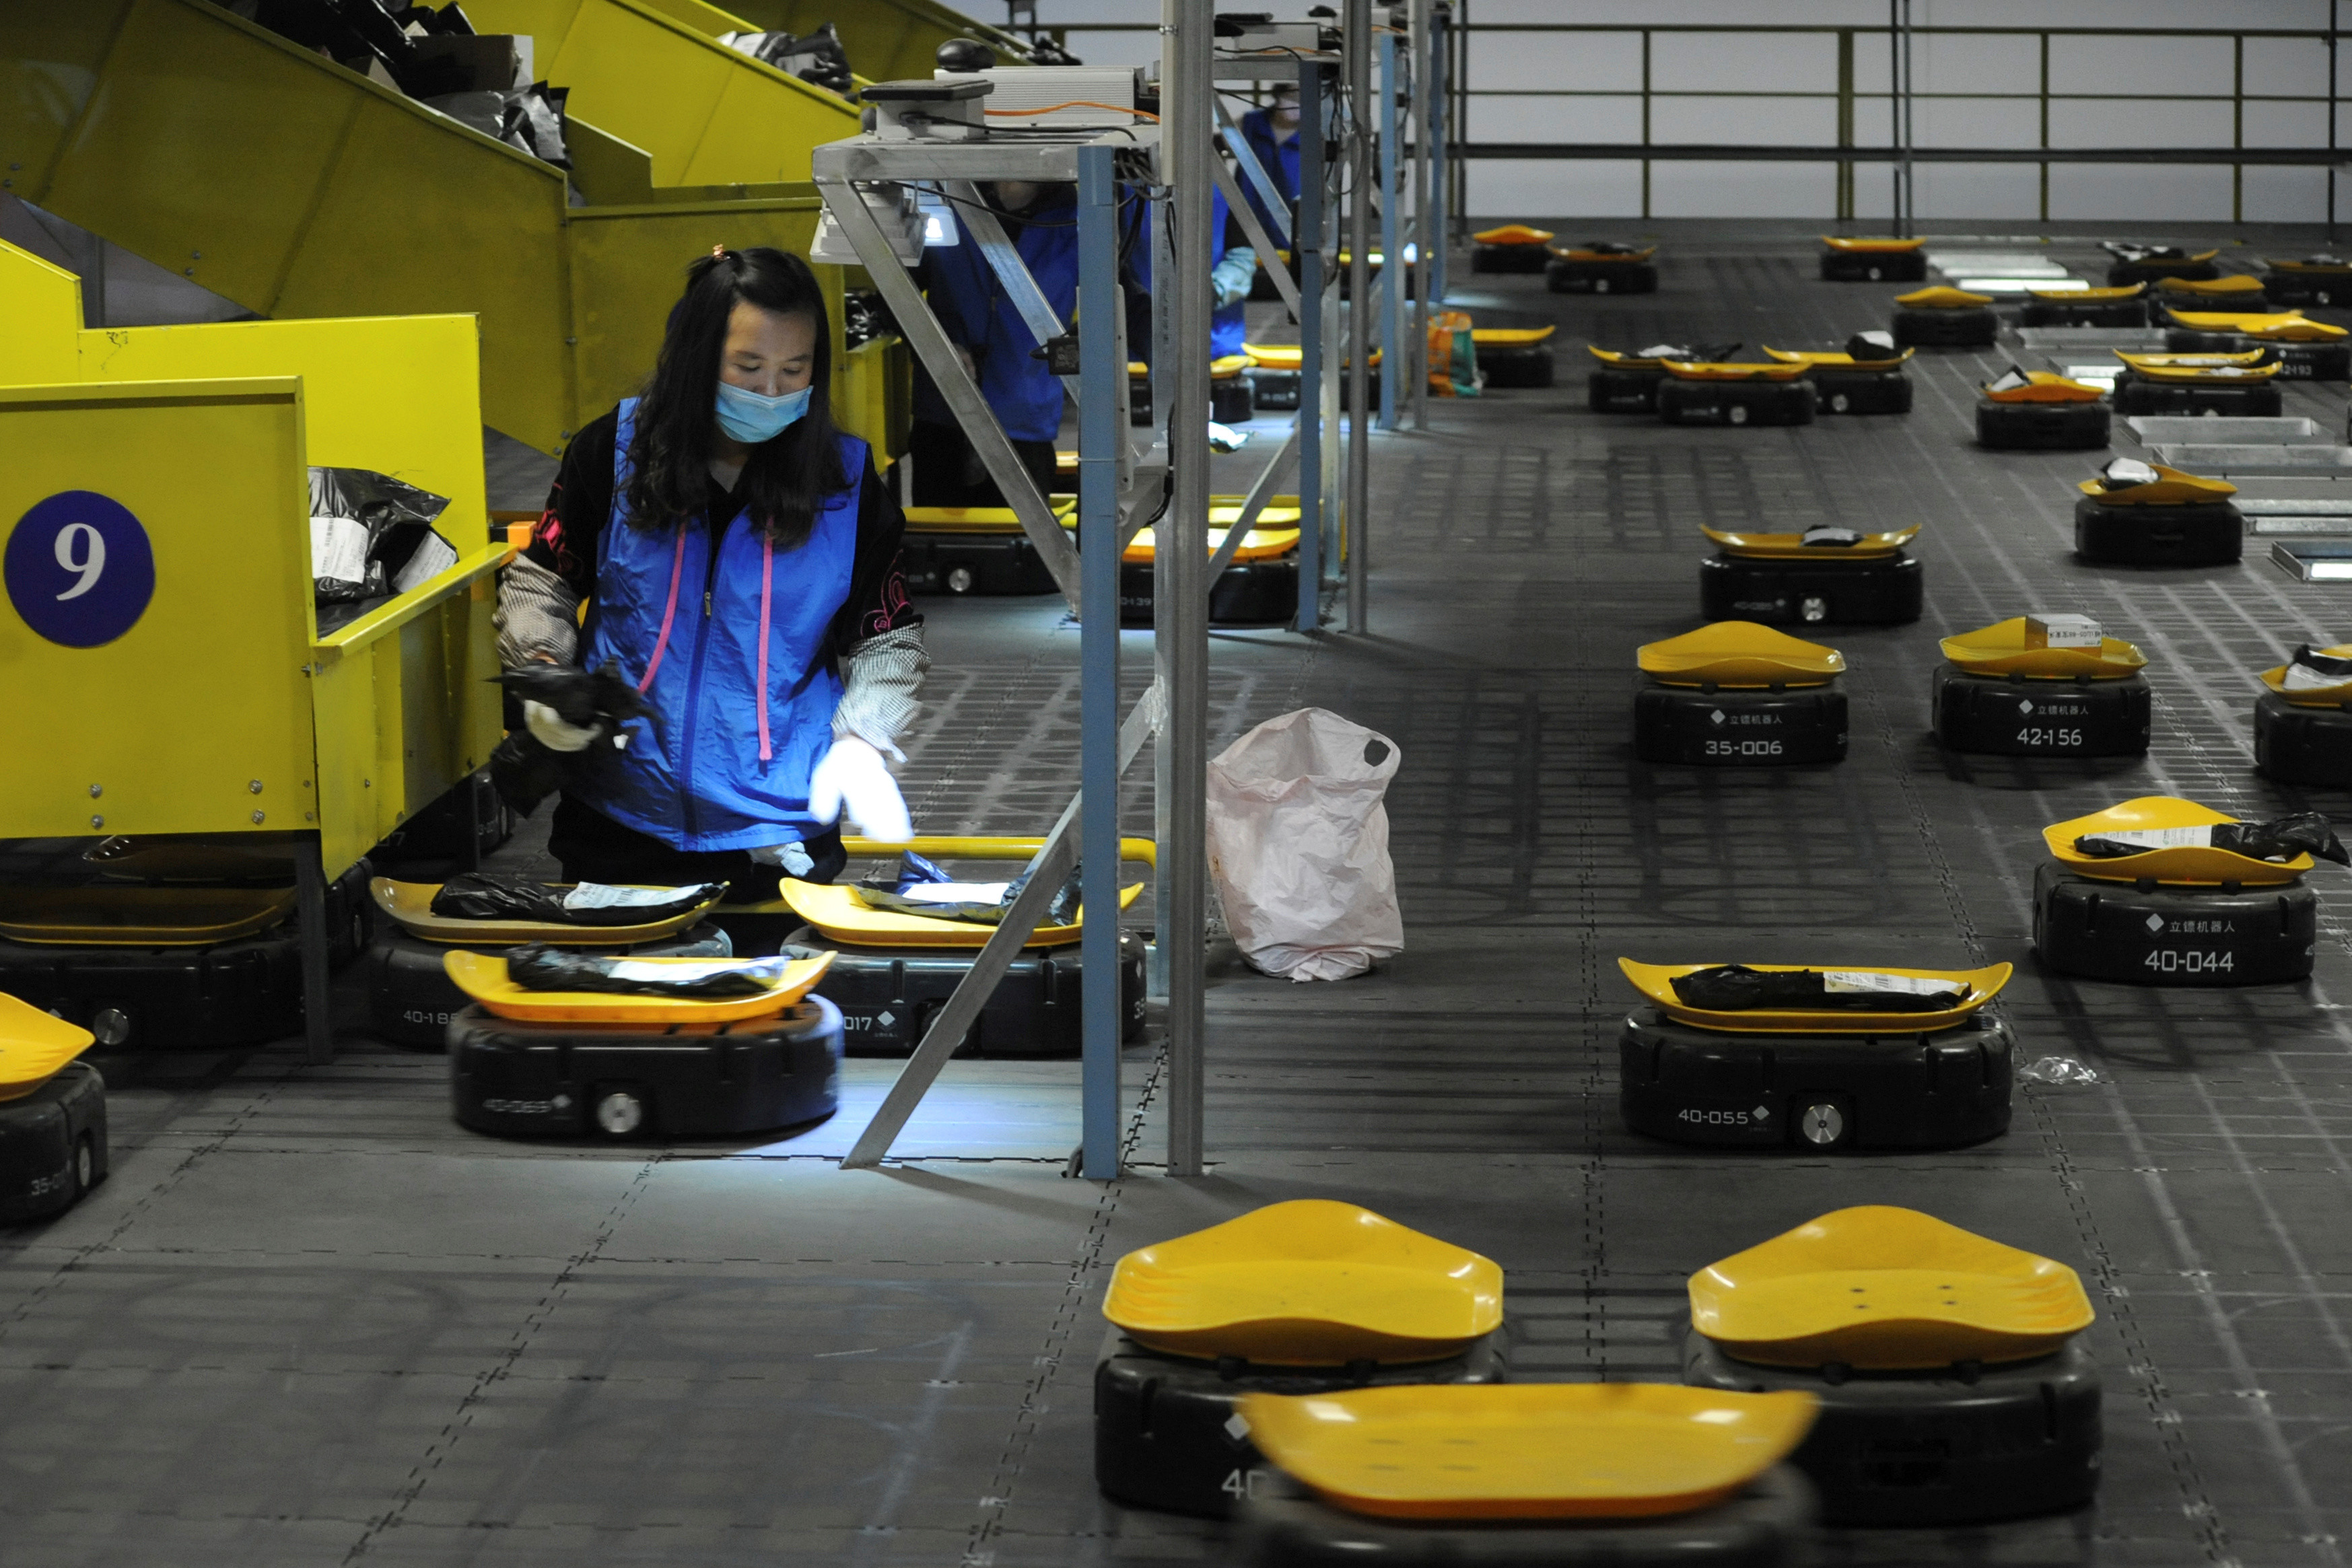 Employees sort parcels with automated guided vehicles (AGVs) at a logistic centre of a postal service a day ahead of the Singles' Day online shopping festival in Nanjing, Jiangsu province, China November 10, 2019. Picture taken November 10, 2019.